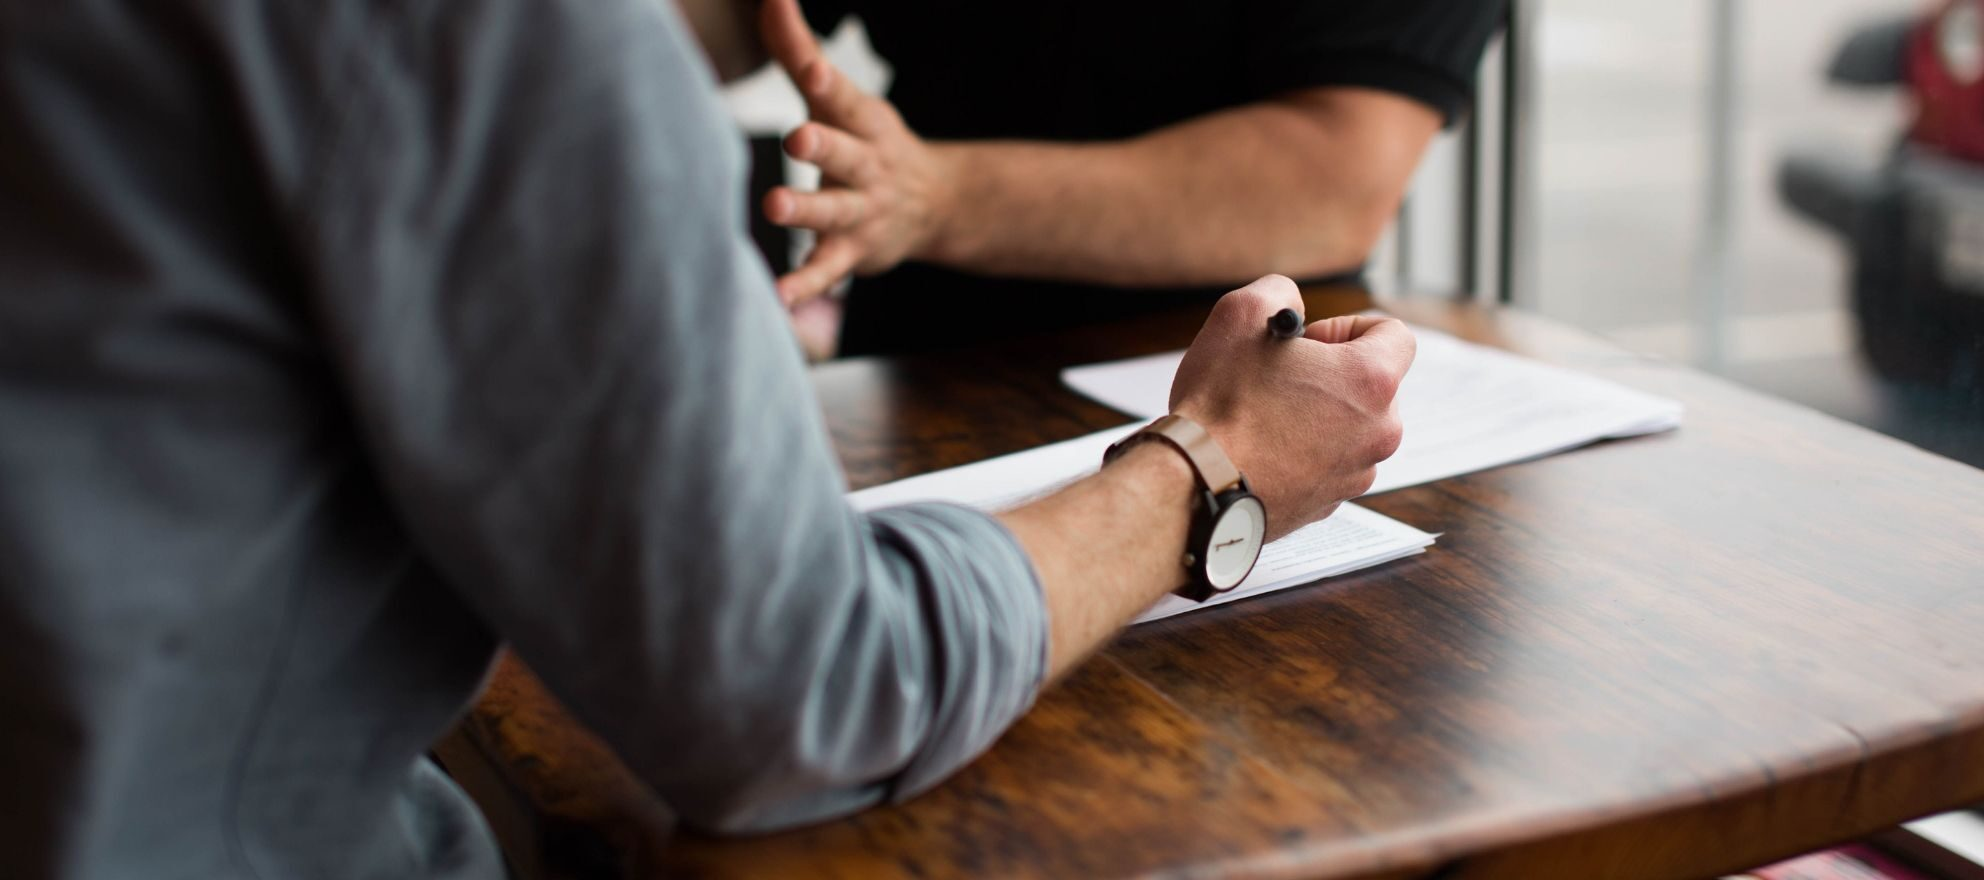 3 tips for closing 90% of listing appointments